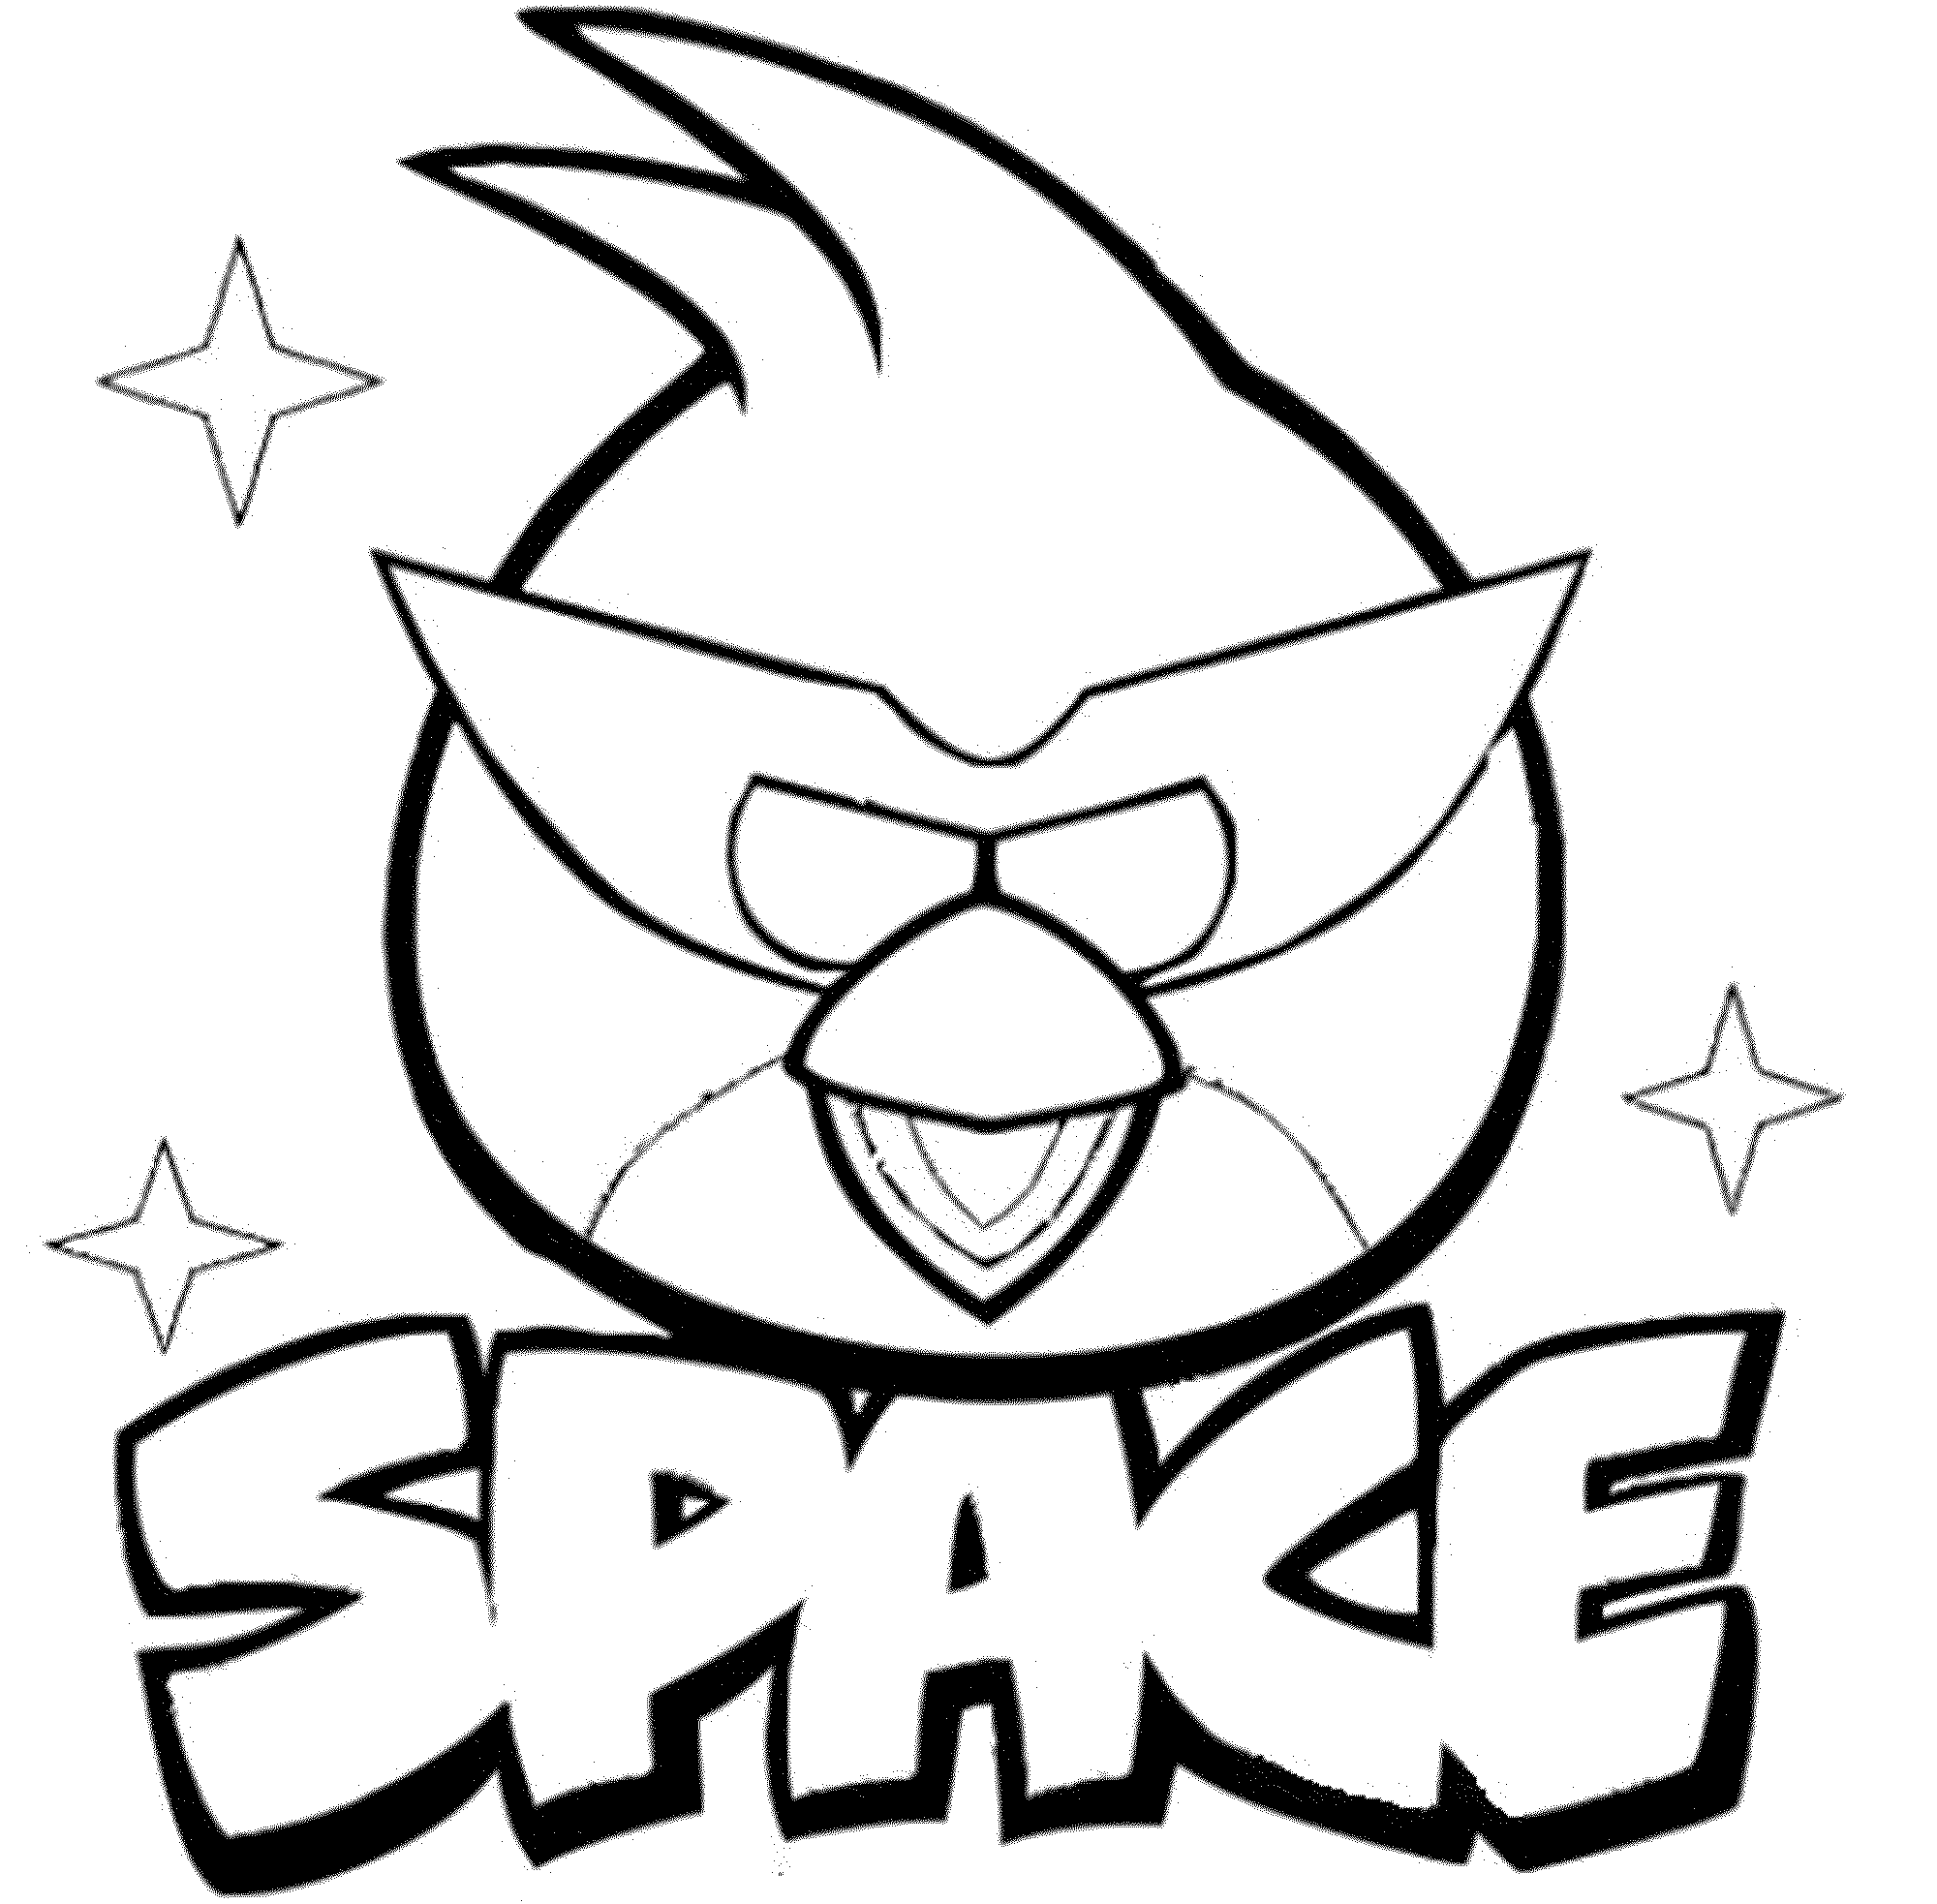 angry birds pictures to color and print angry birds coloring pages birds print angry pictures color and to